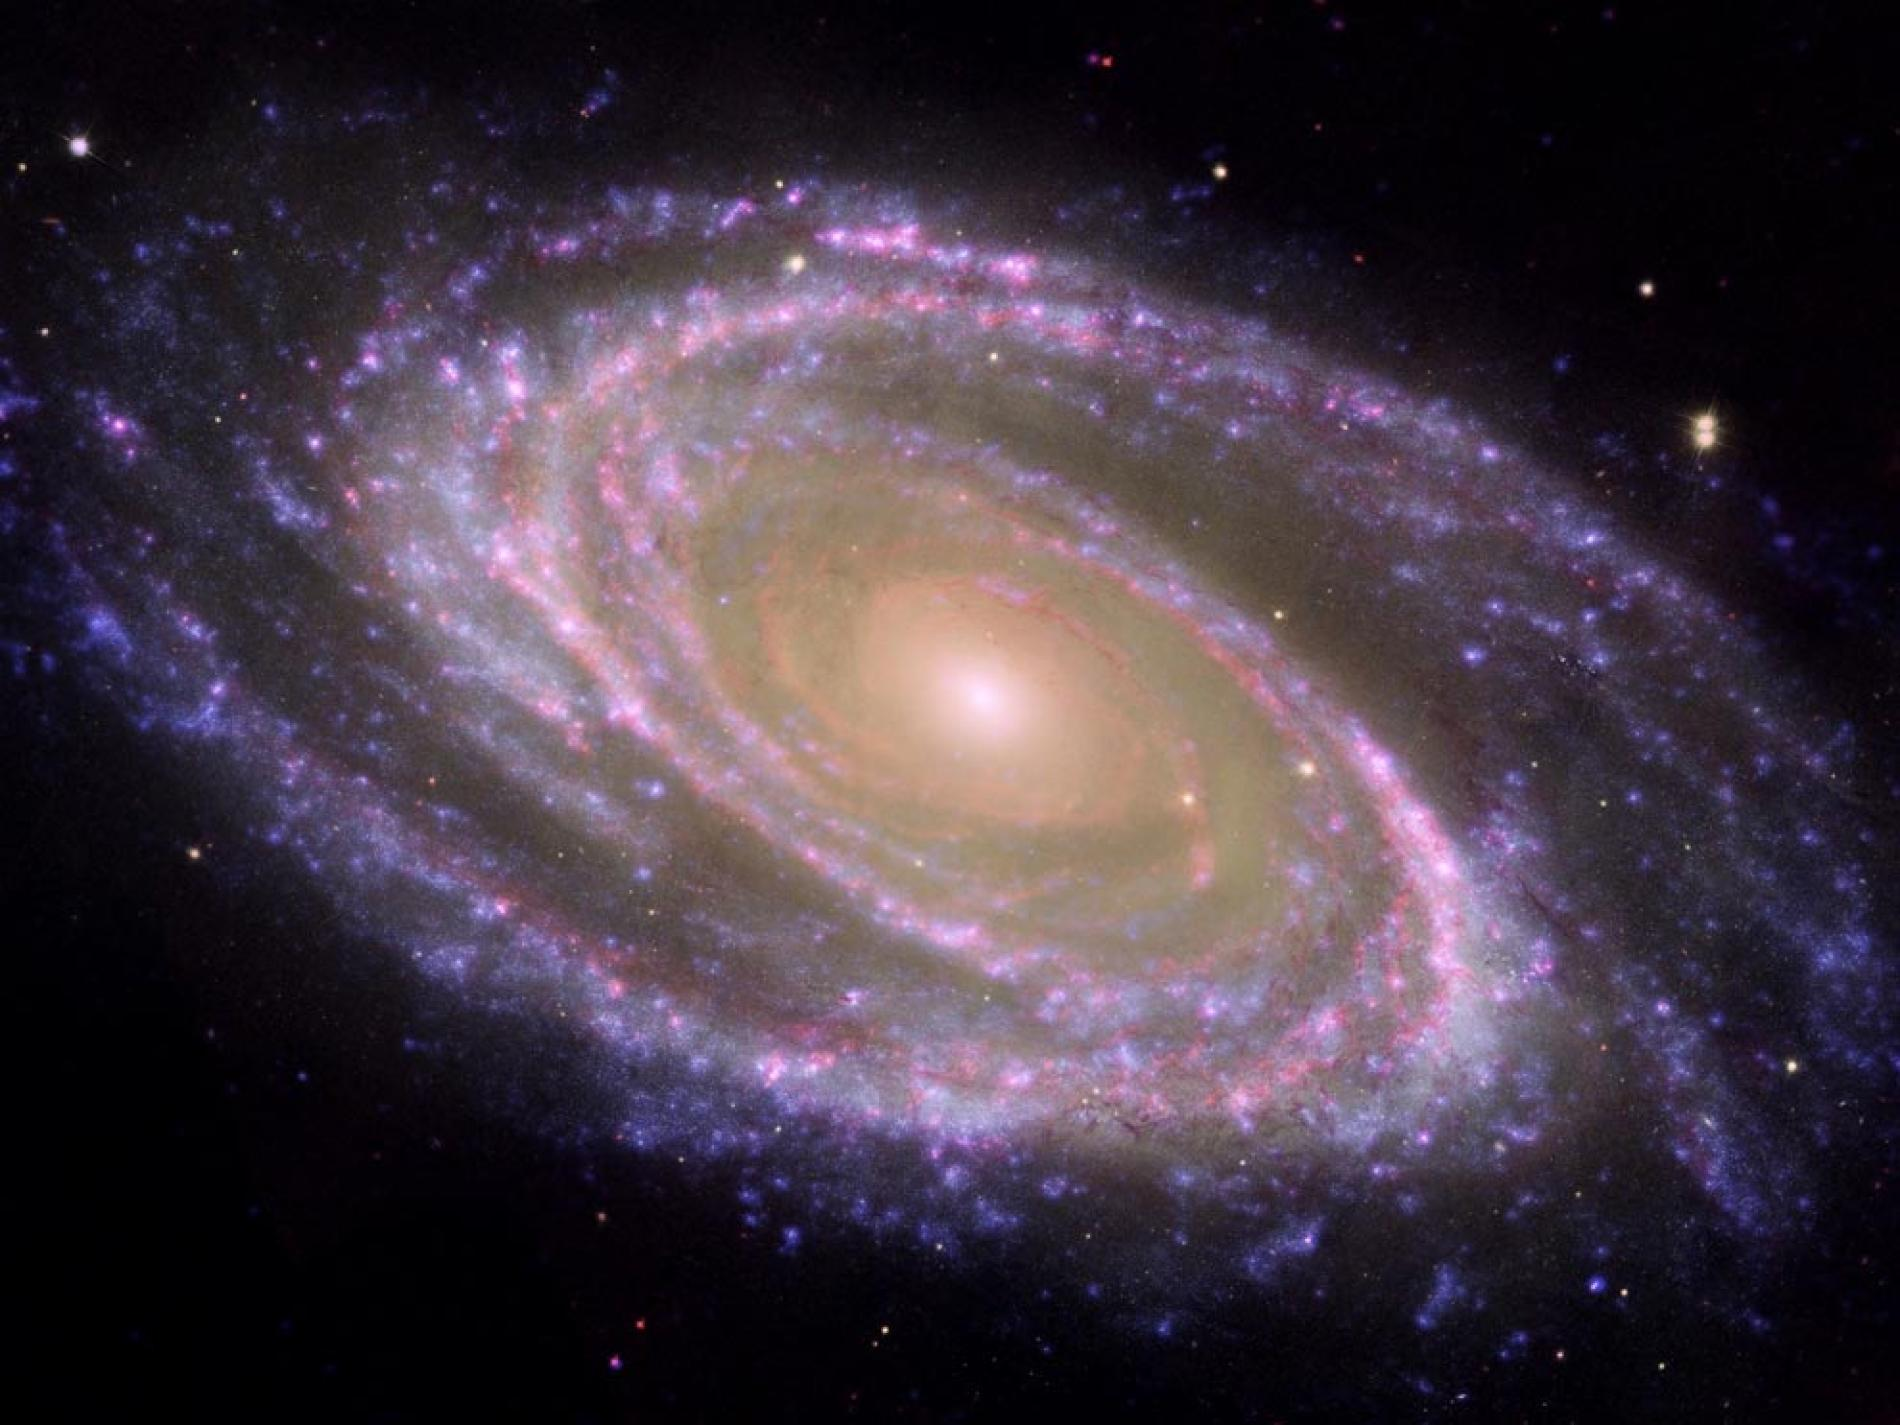 https://www.nationalgeographic.com/science/space/universe/galaxies/